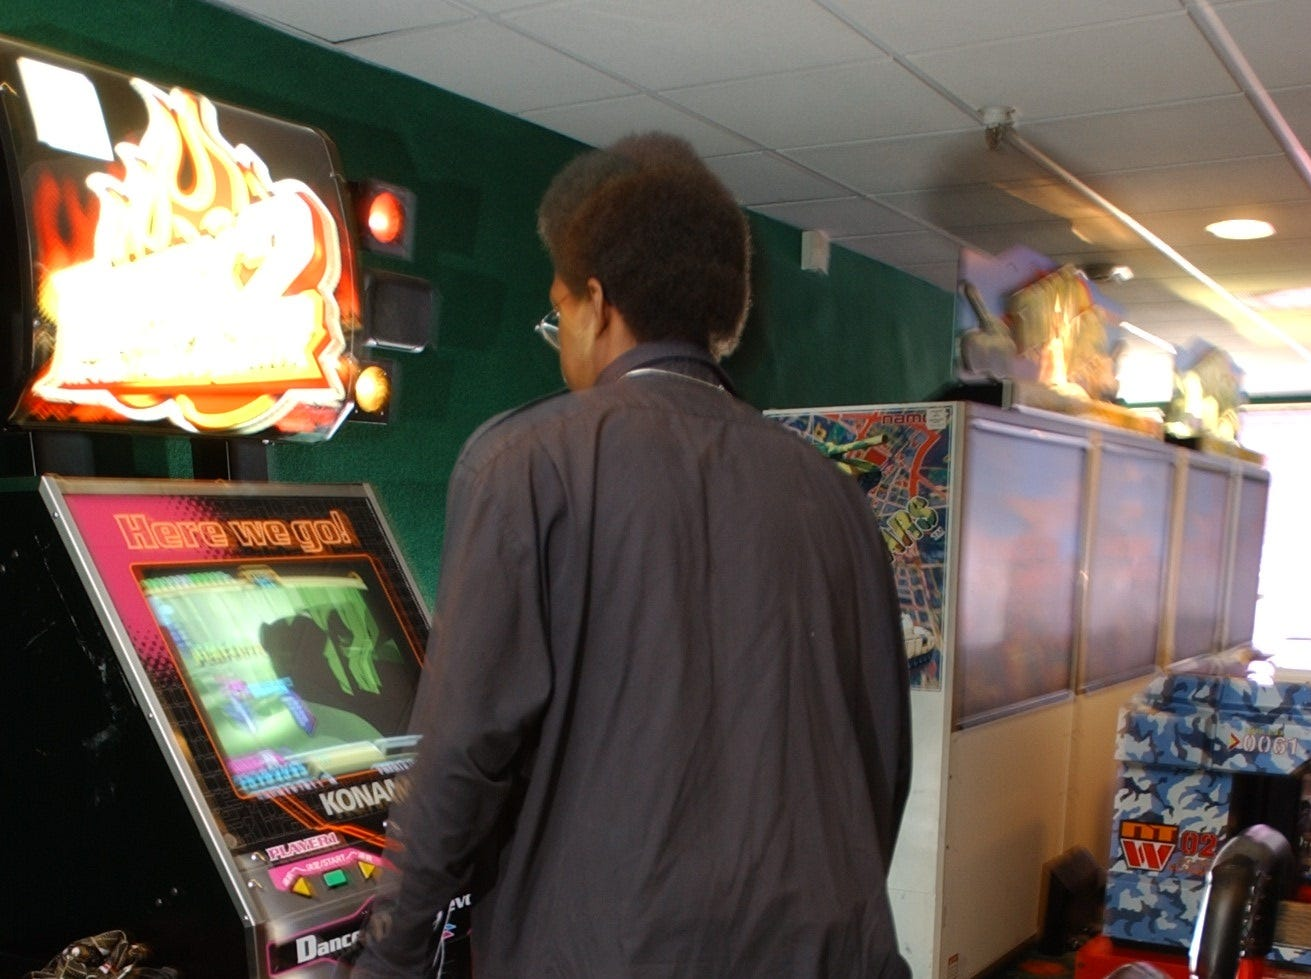 Dance, Dance Revolution video game at Fun N Games arcade at Willowbrook Mall. Johnathan Wright of Passaic takes a turn on the dance machine on July 15, 2002.